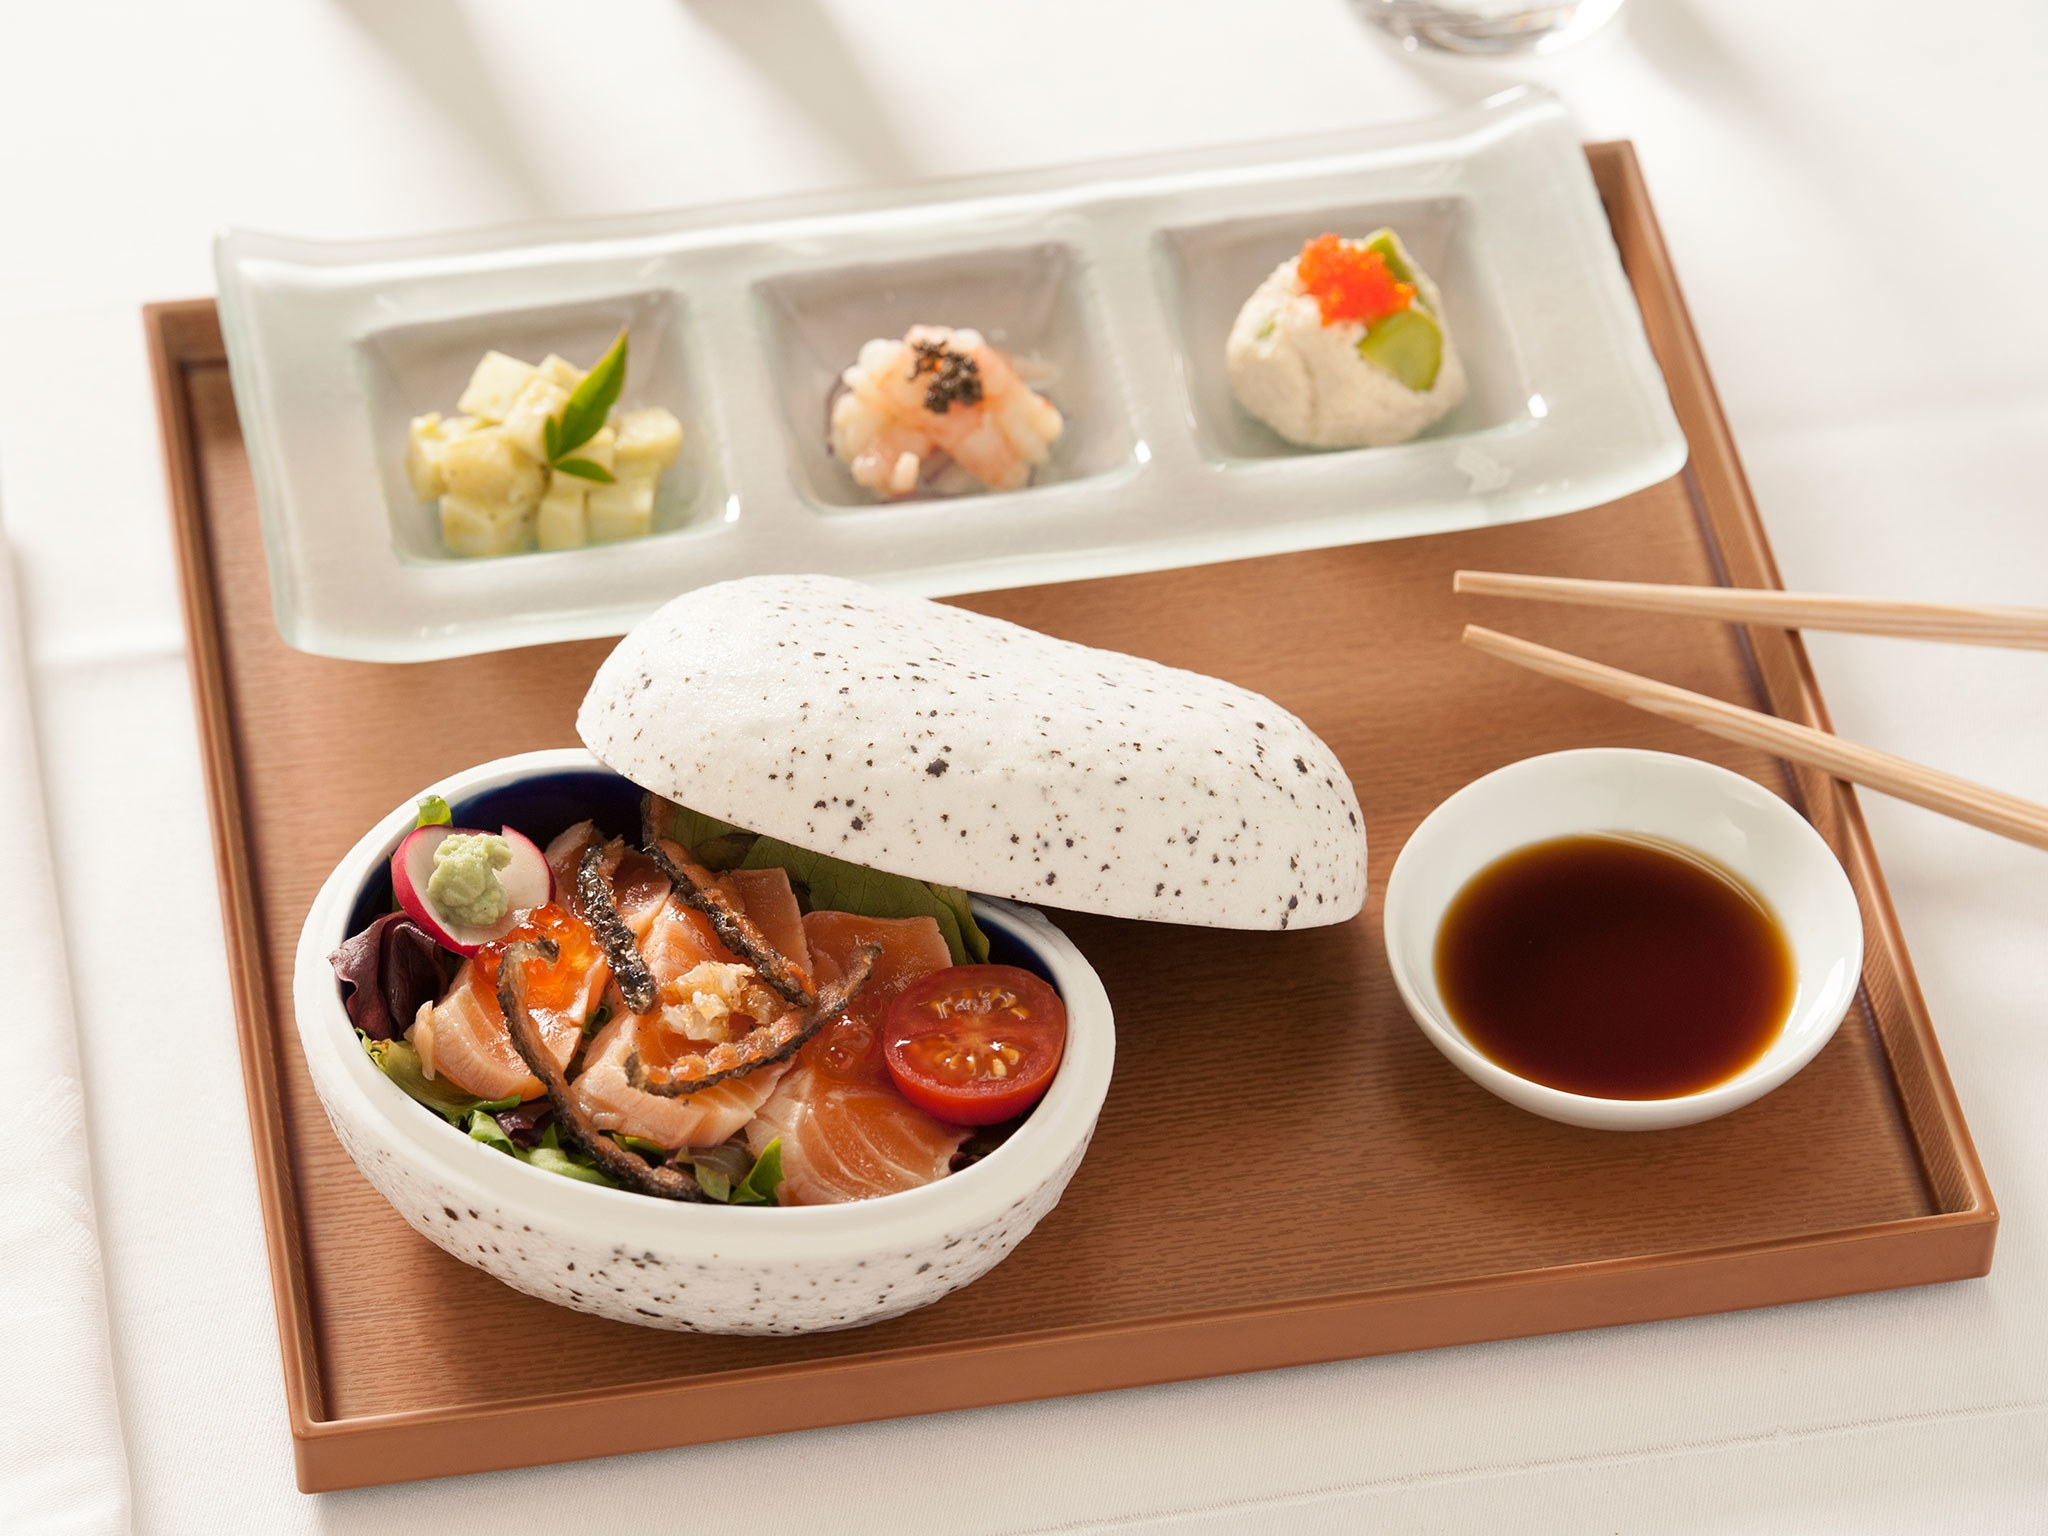 Singapore Airlines - Sushi Set. SkyLuxTravel Blog. SkyLux - Discounted Business and First Class Flights